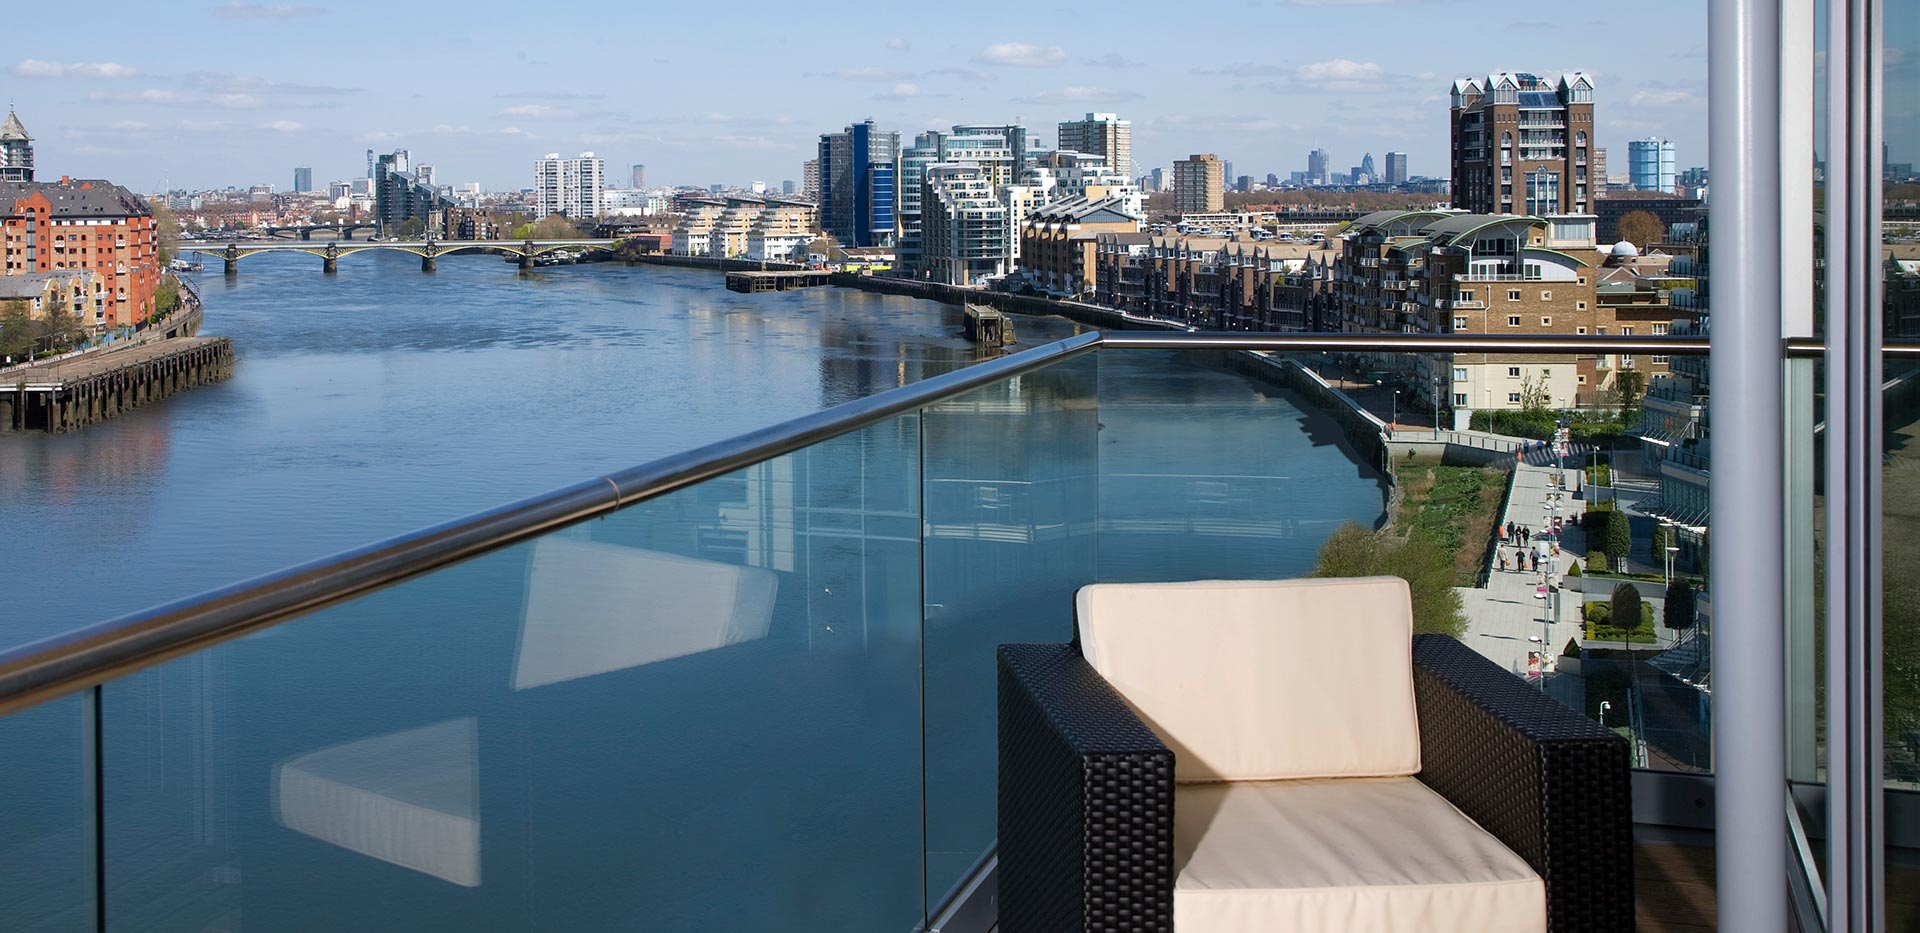 Berkeley, Battersea Reach, Lifestyle